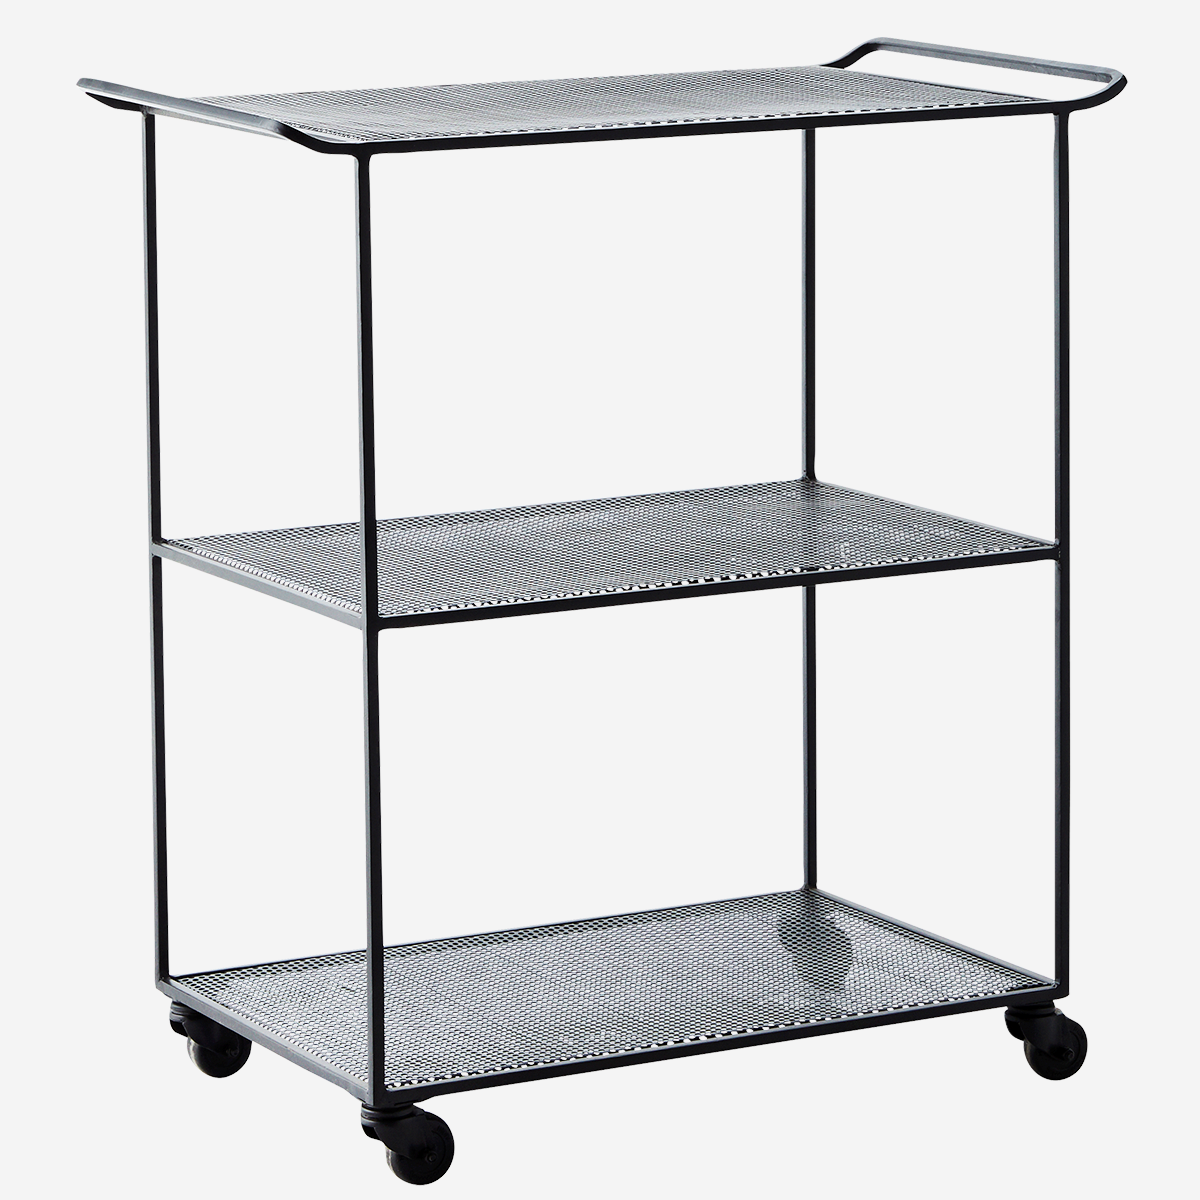 Rectangular Iron Trolley. - Madam Stoltz